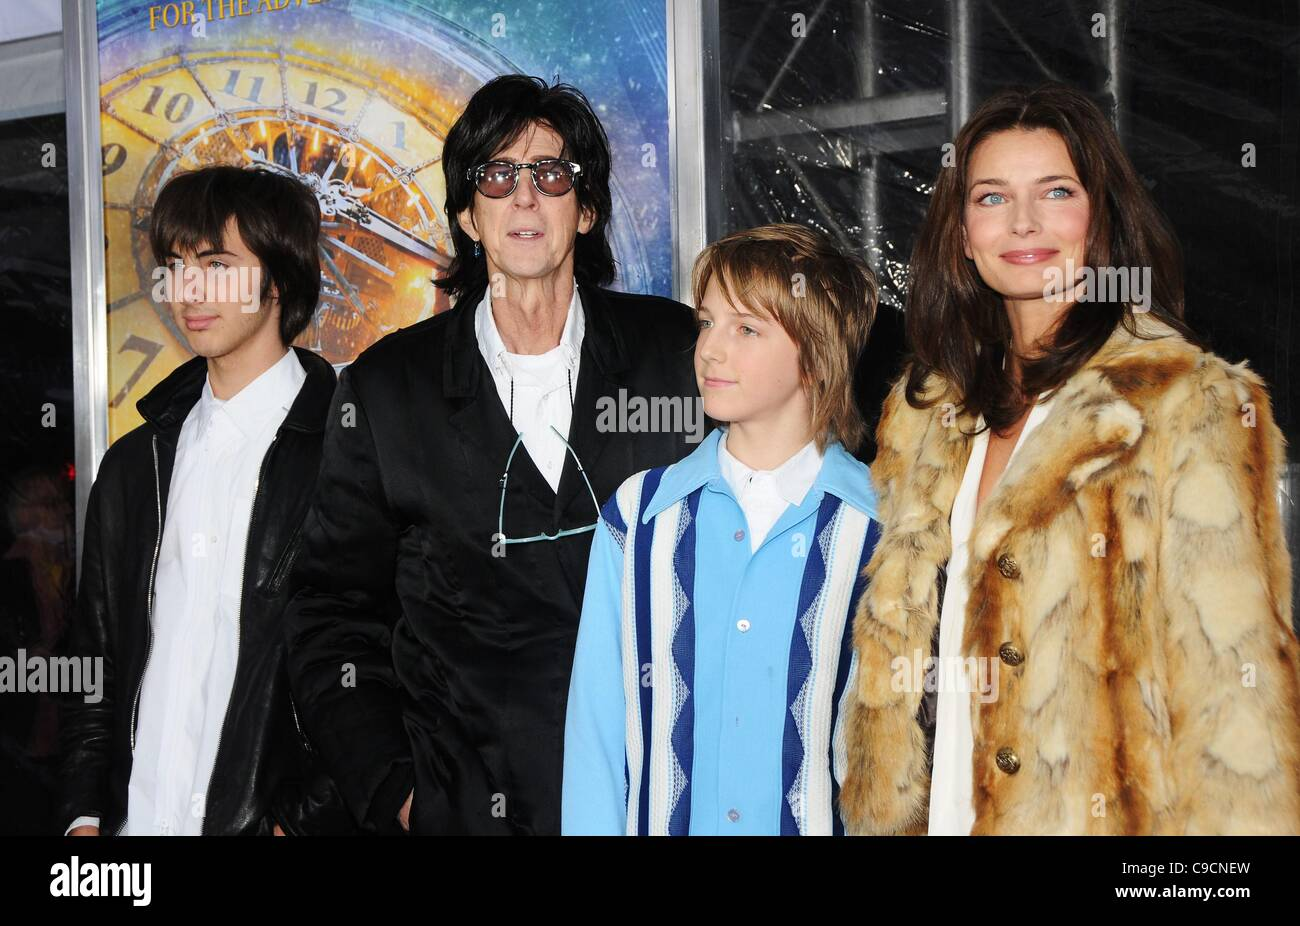 Jonathan Raven Ocasek Ric Ocasek Oliver Orion Ocasek Paulina Stock Photo Alamy In the digital age, trying to have online content removed via traditional legal avenues has become increasingly difficult and often ends up causing even. https www alamy com stock photo jonathan raven ocasek ric ocasek oliver orion ocasek paulina porizkova 40232945 html